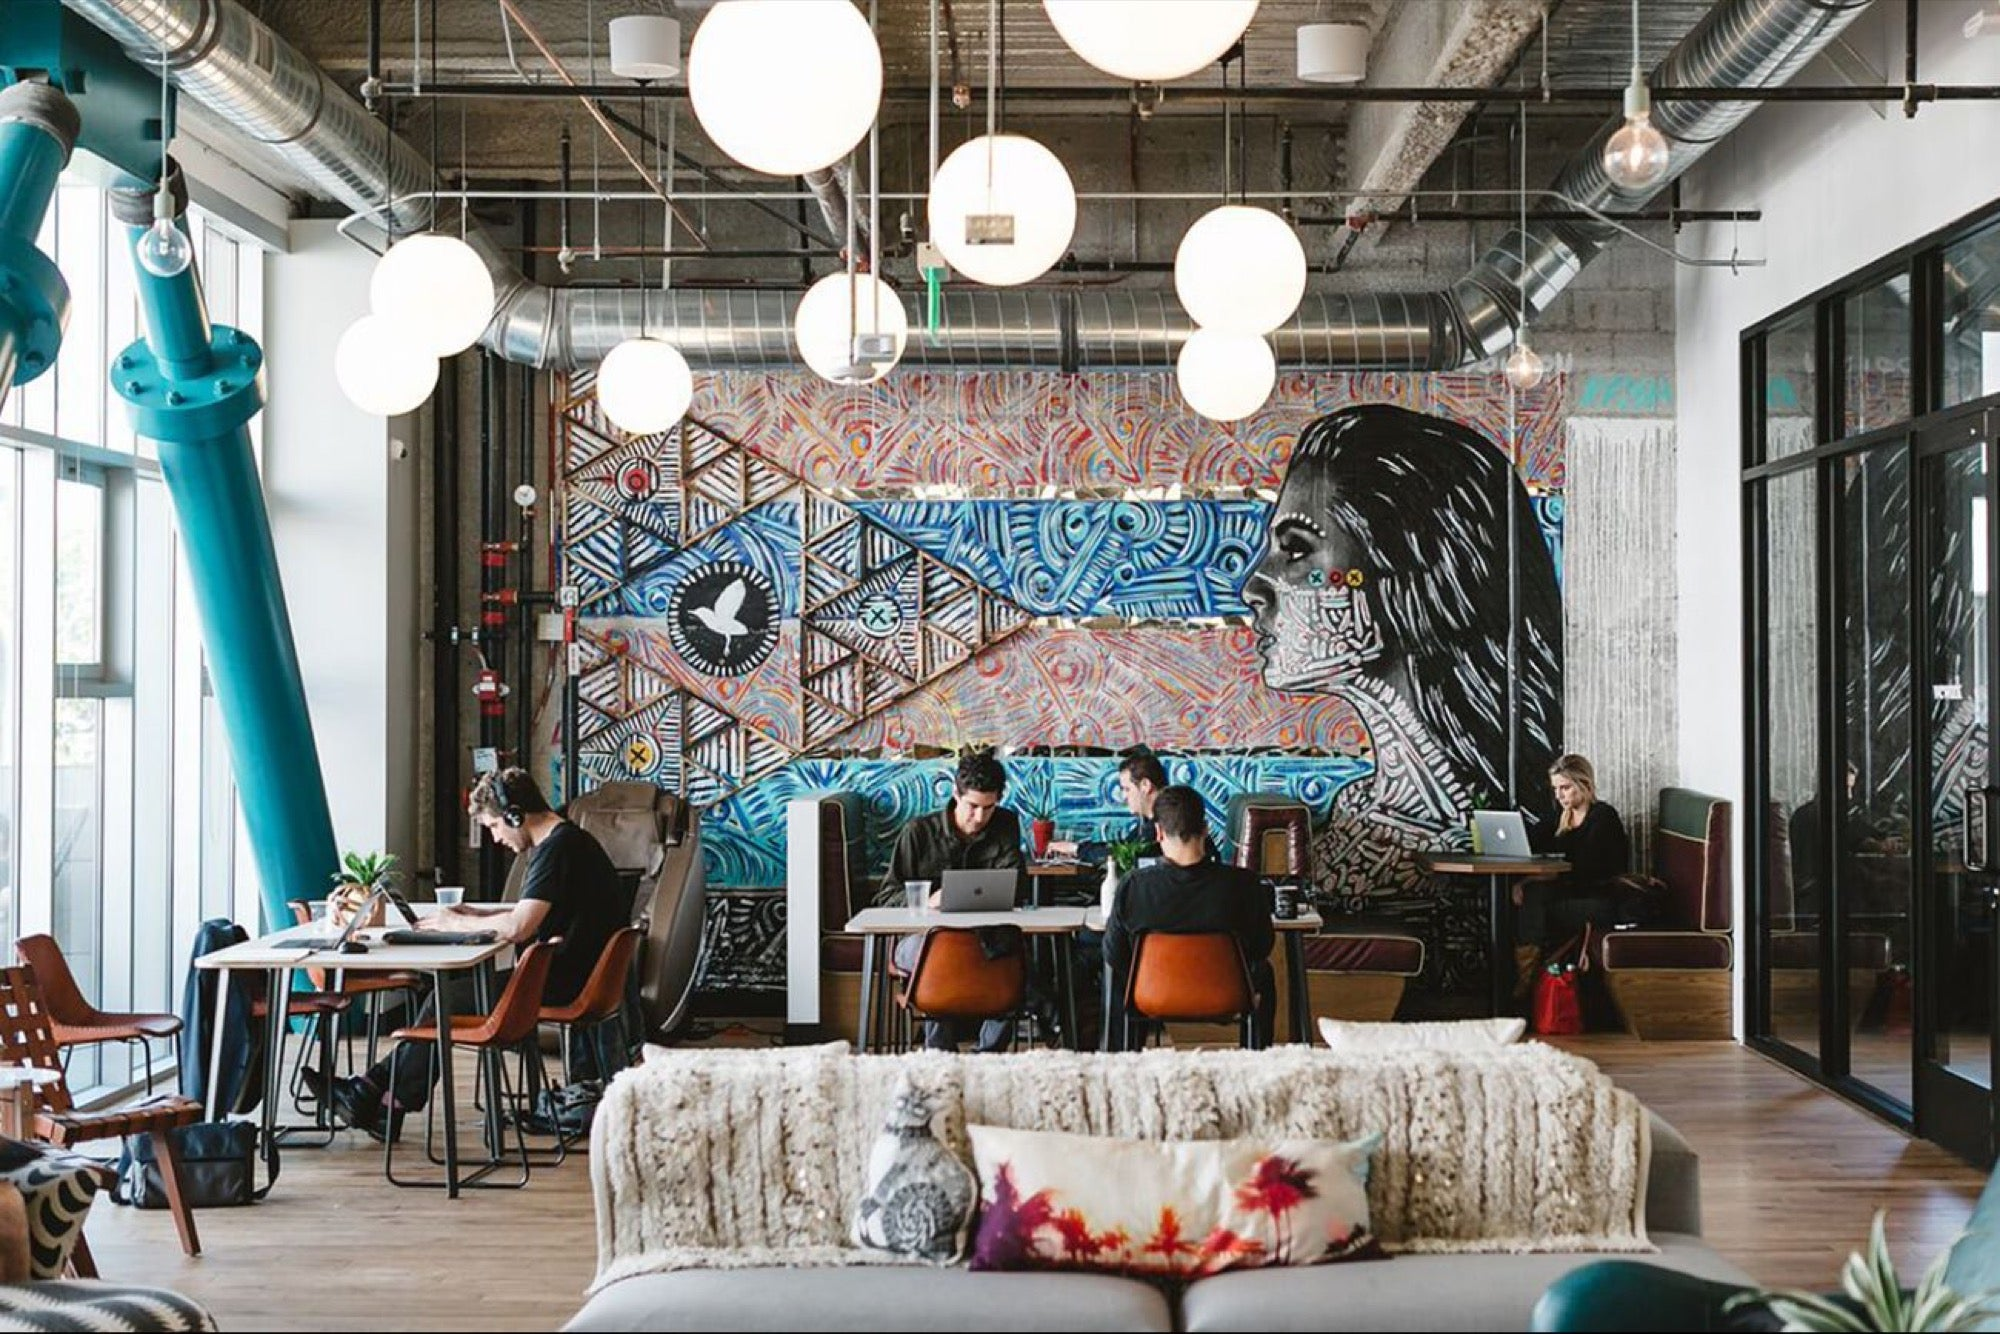 can an all glass fice building really be considered interior designer fees new york 12 Crazy Things You Should Know About WeWork, the Coworking Company Valued  at $20 Billion